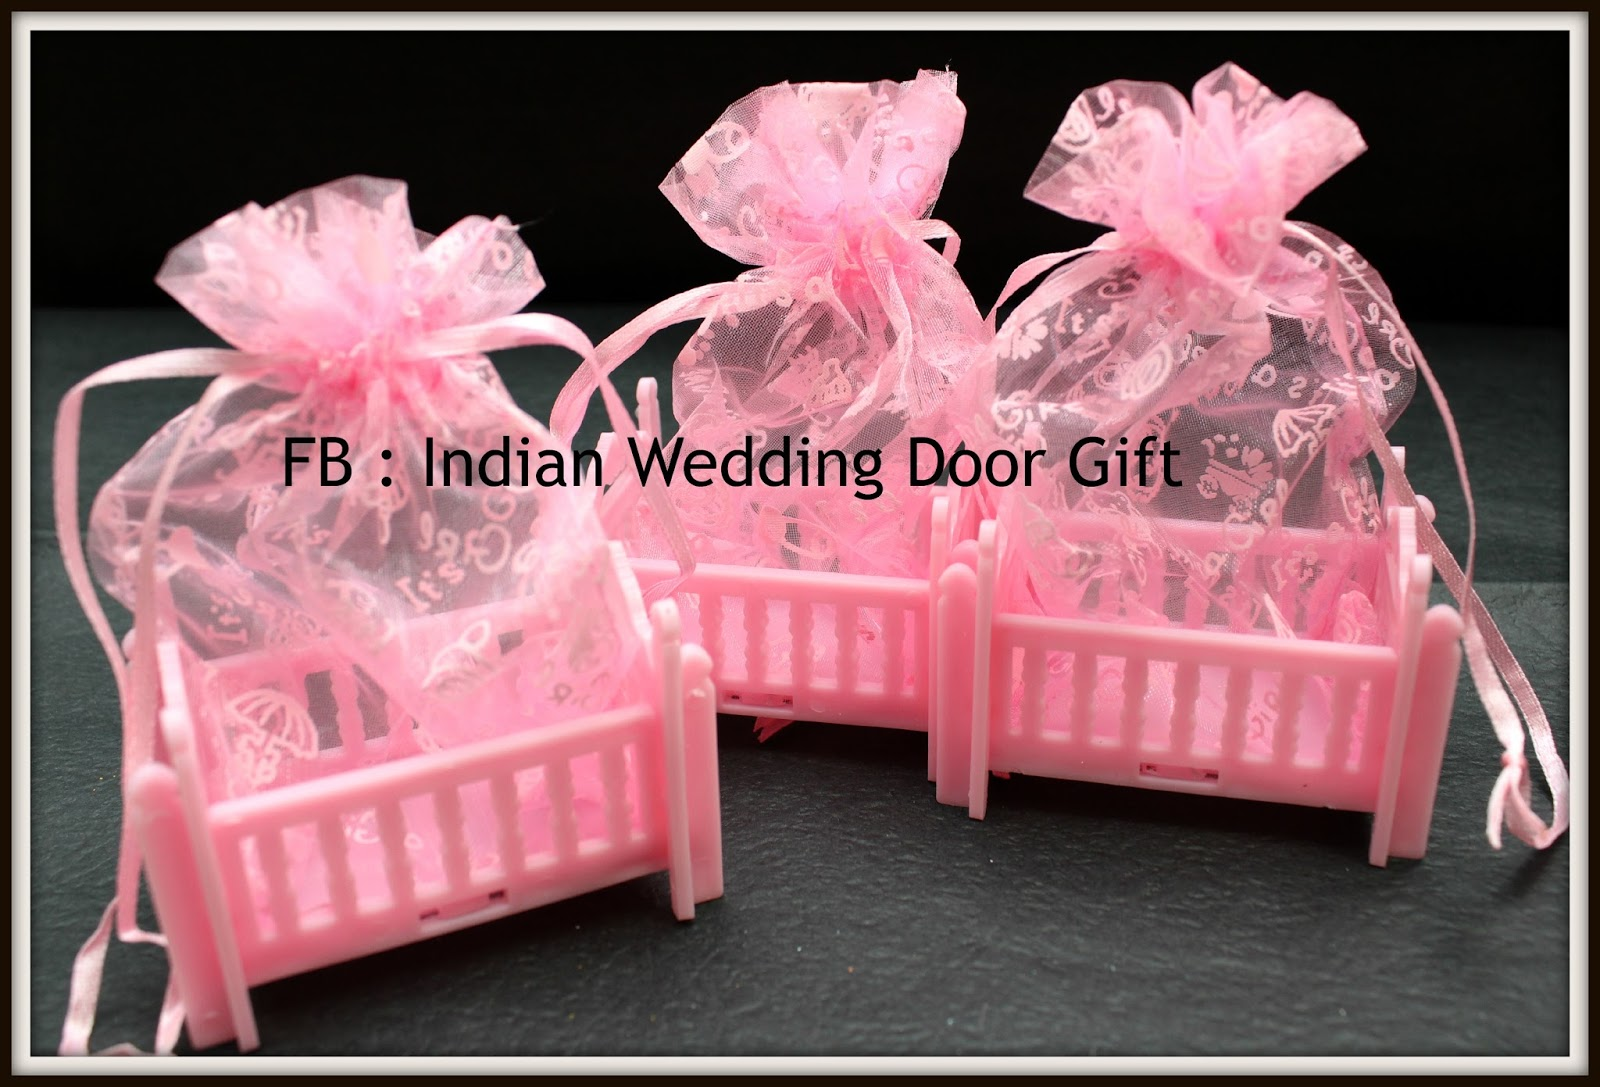 Indian Wedding Door Gift